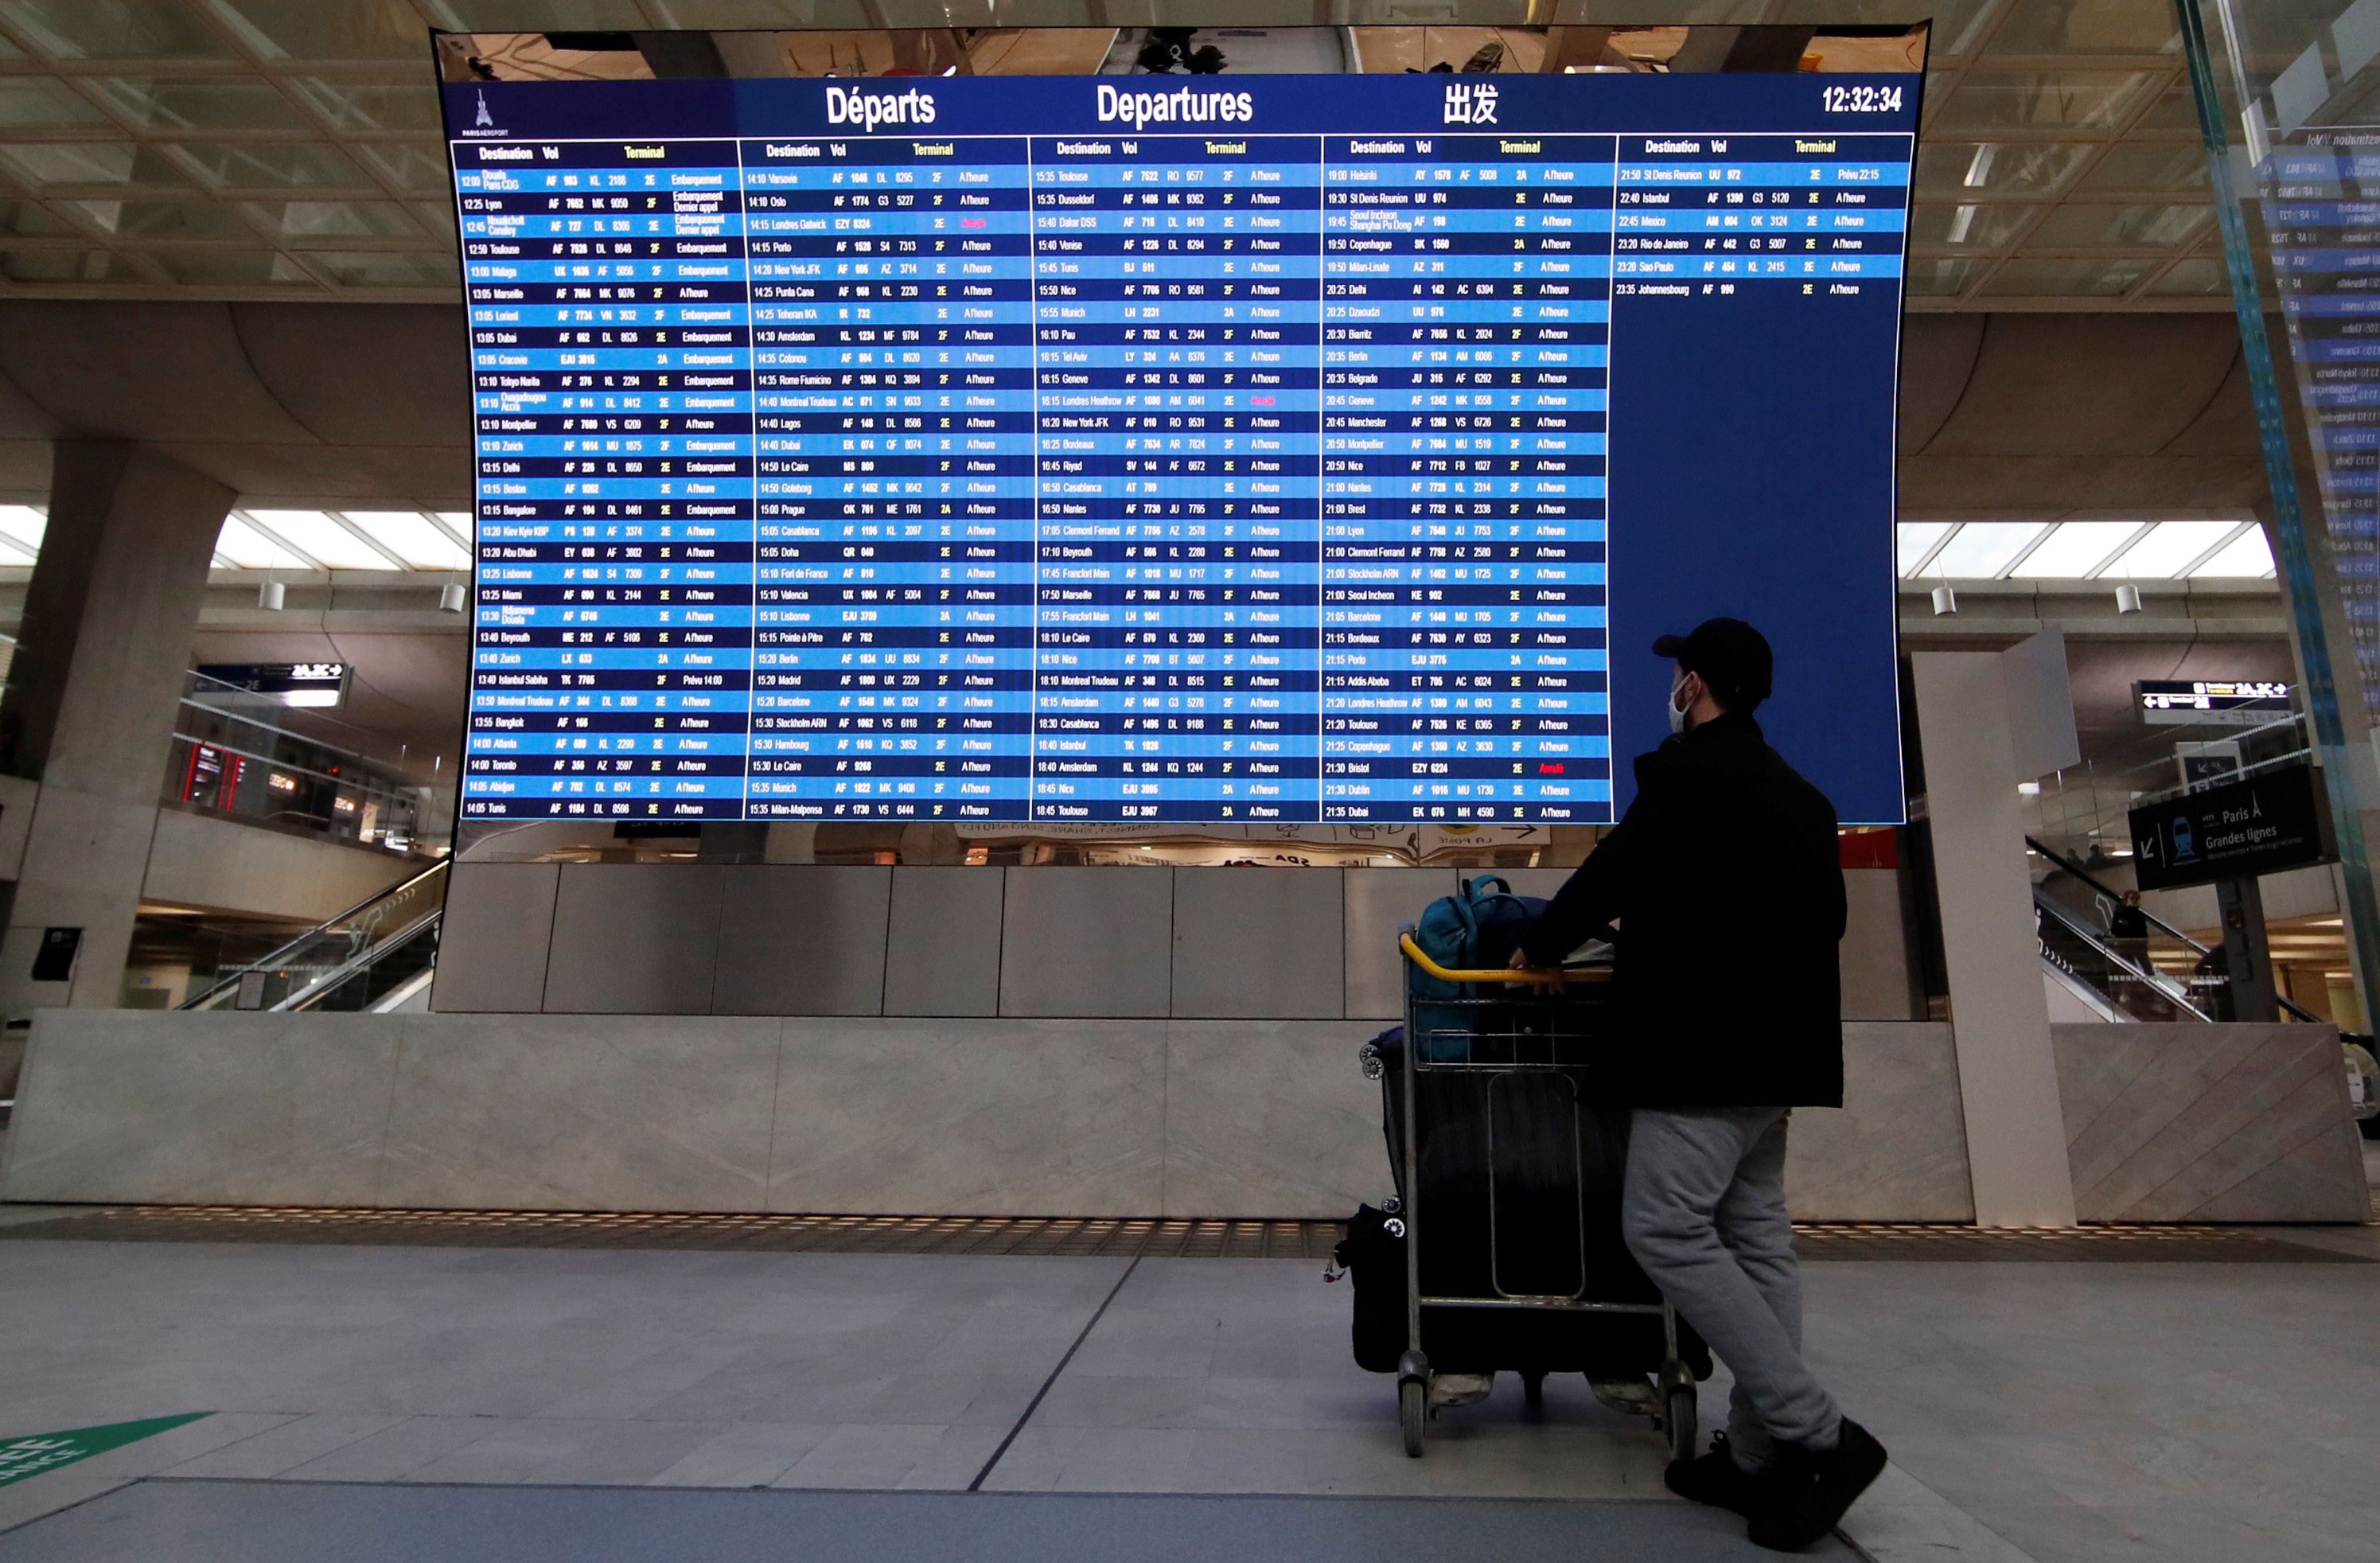 A passenger looks at a departures board with cancelled flights from Paris to London and Bristol at Paris Charles de Gaulle airport in Roissy near Paris, amid the spread of the coronavirus disease (COVID-19) in France, December 21, 2020. REUTERS/Gonzalo Fuentes